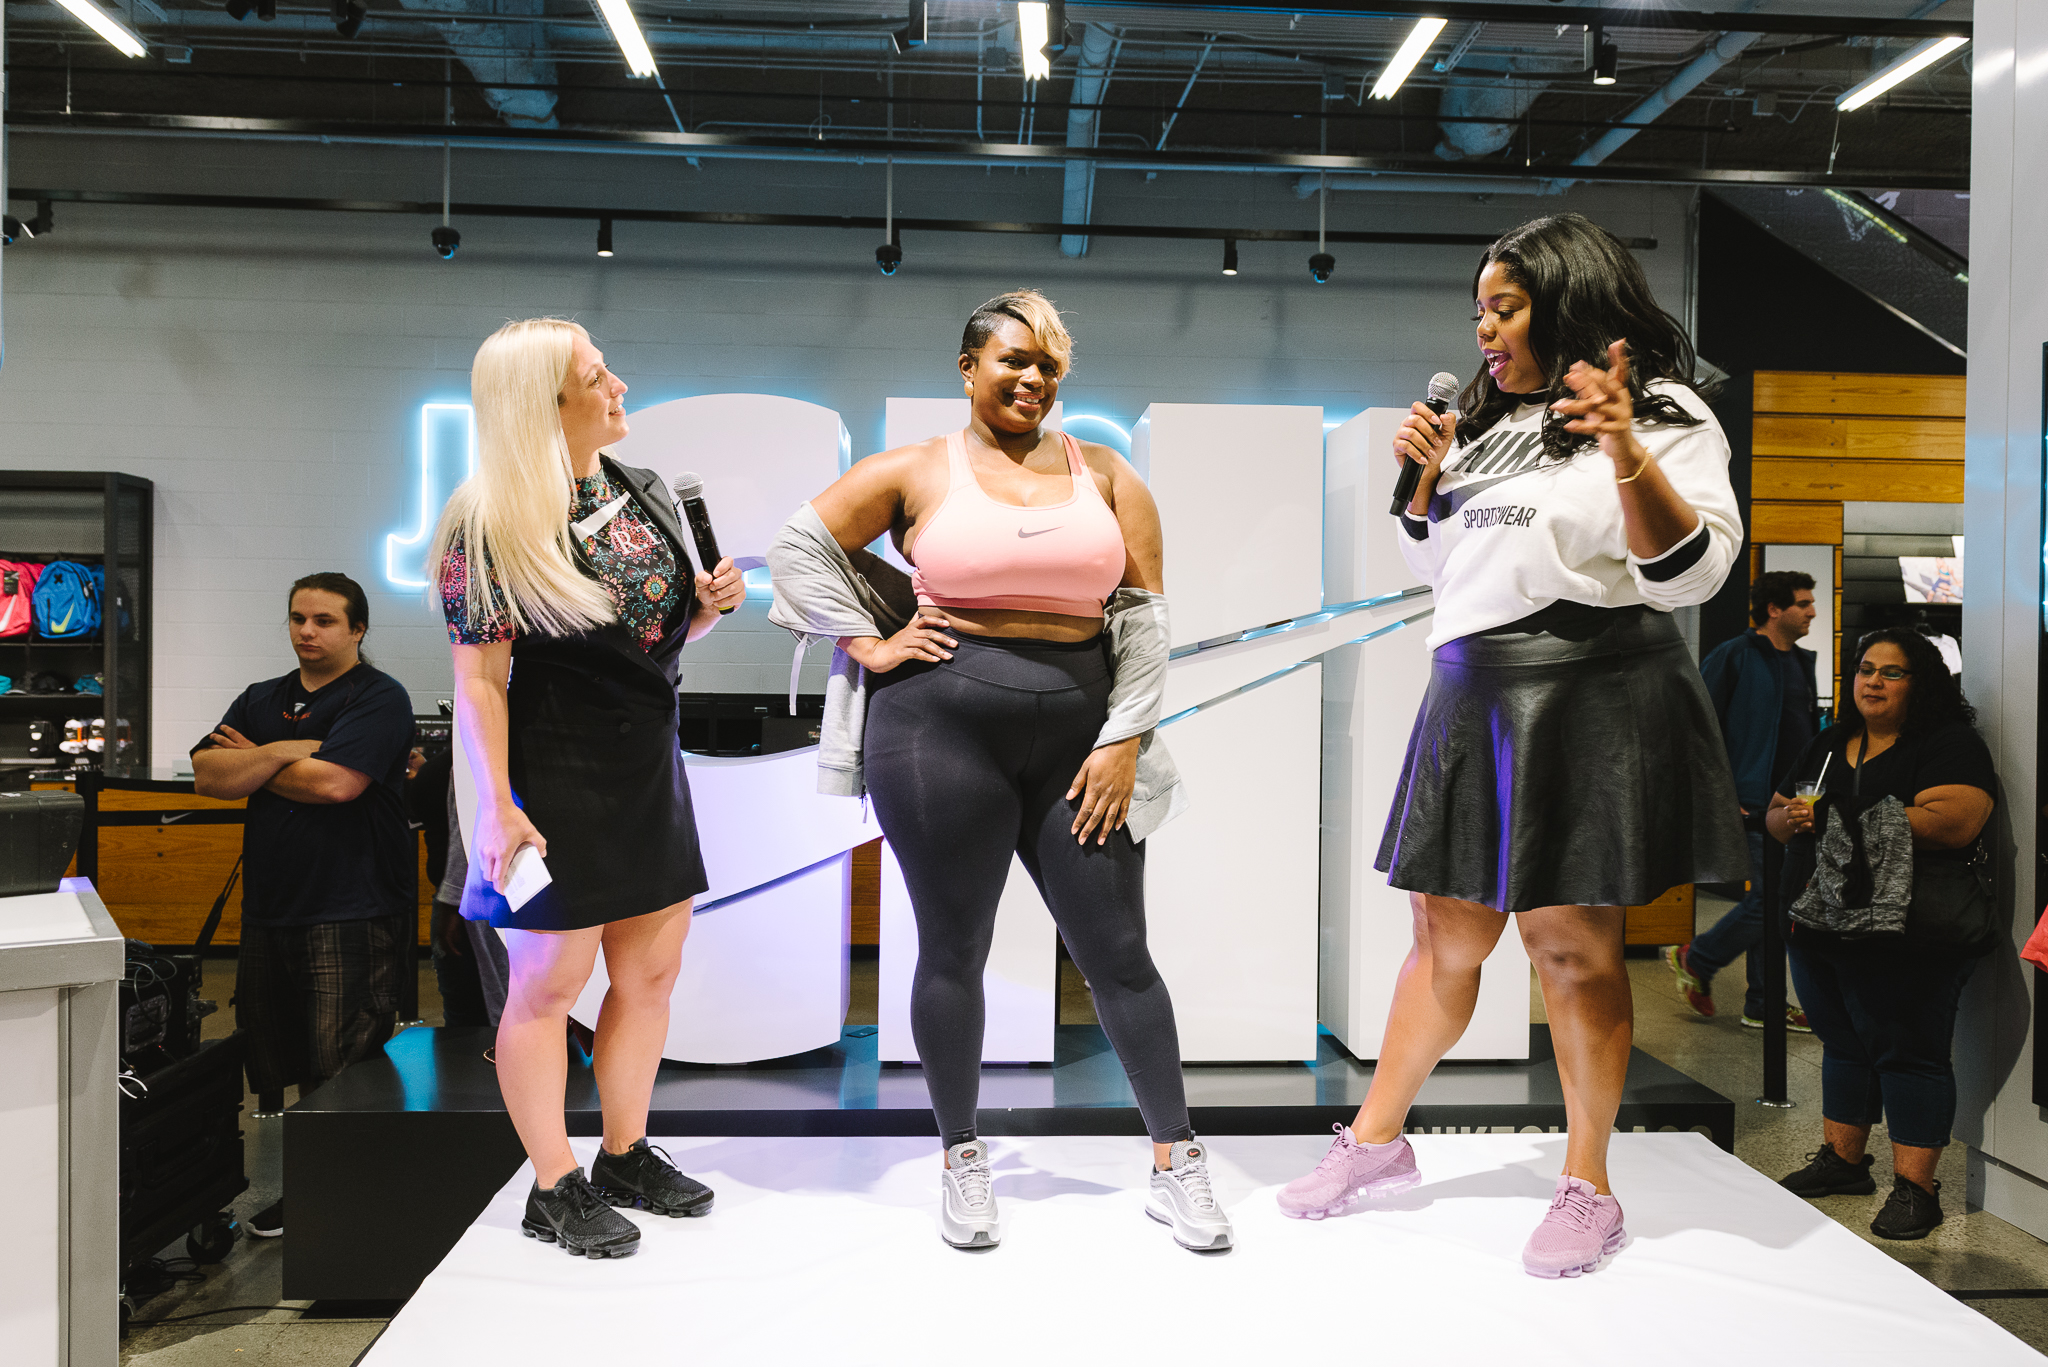 Hayet Rida Chicago Nike Plus Size Line Event Fashion Lifestyle Blogger Nike Air Society Vapor Max 53.jpg